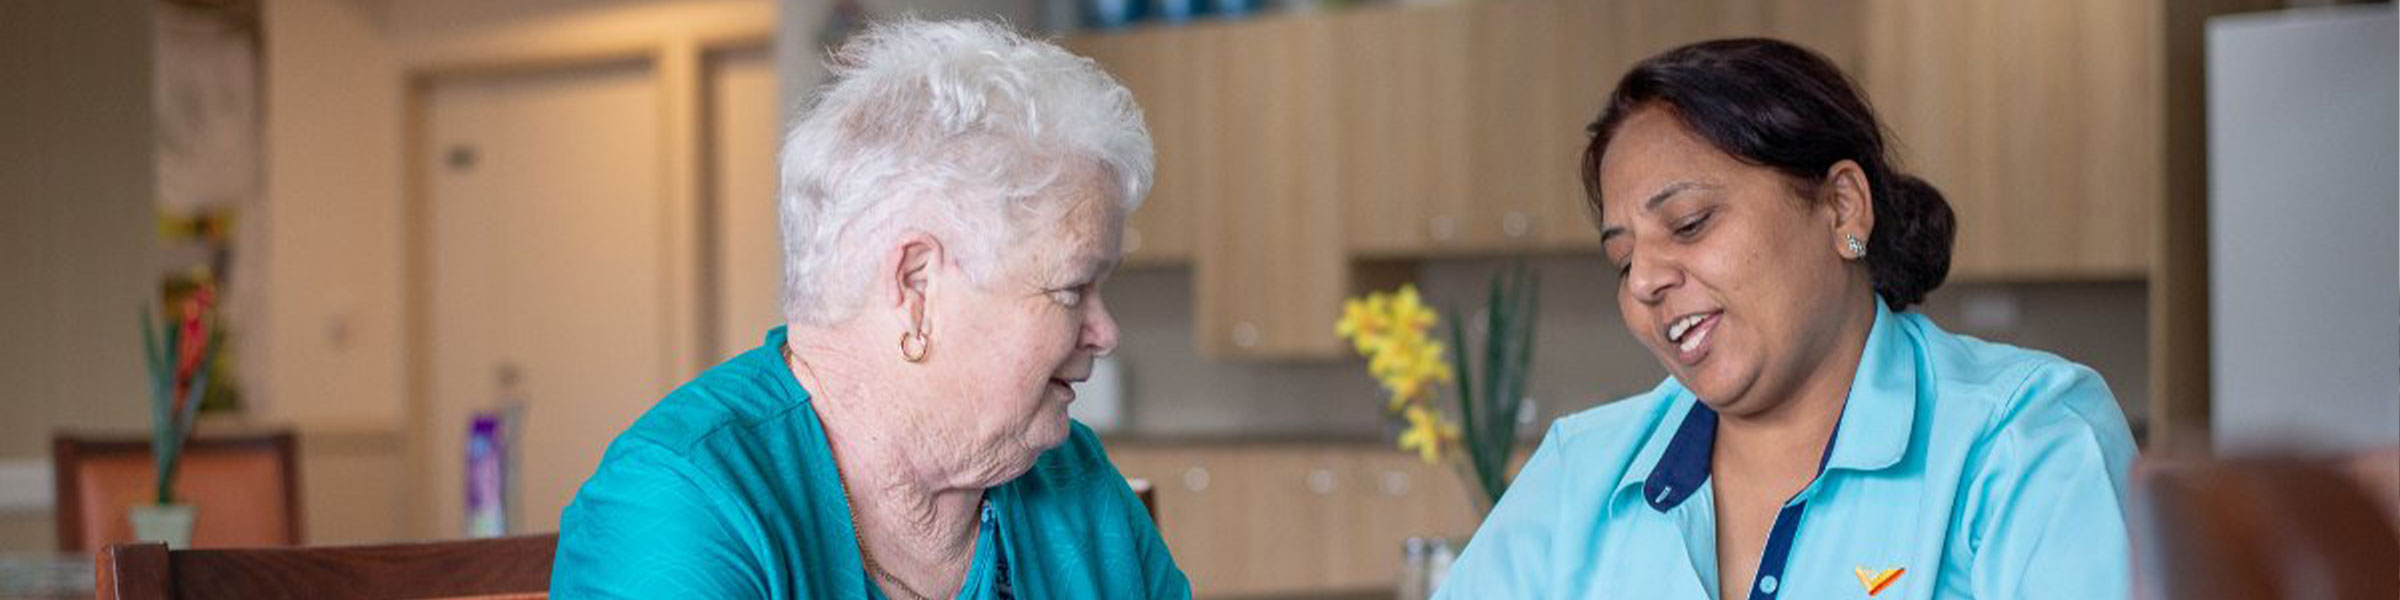 Vacenti Aged Care Fees and Charges Explained